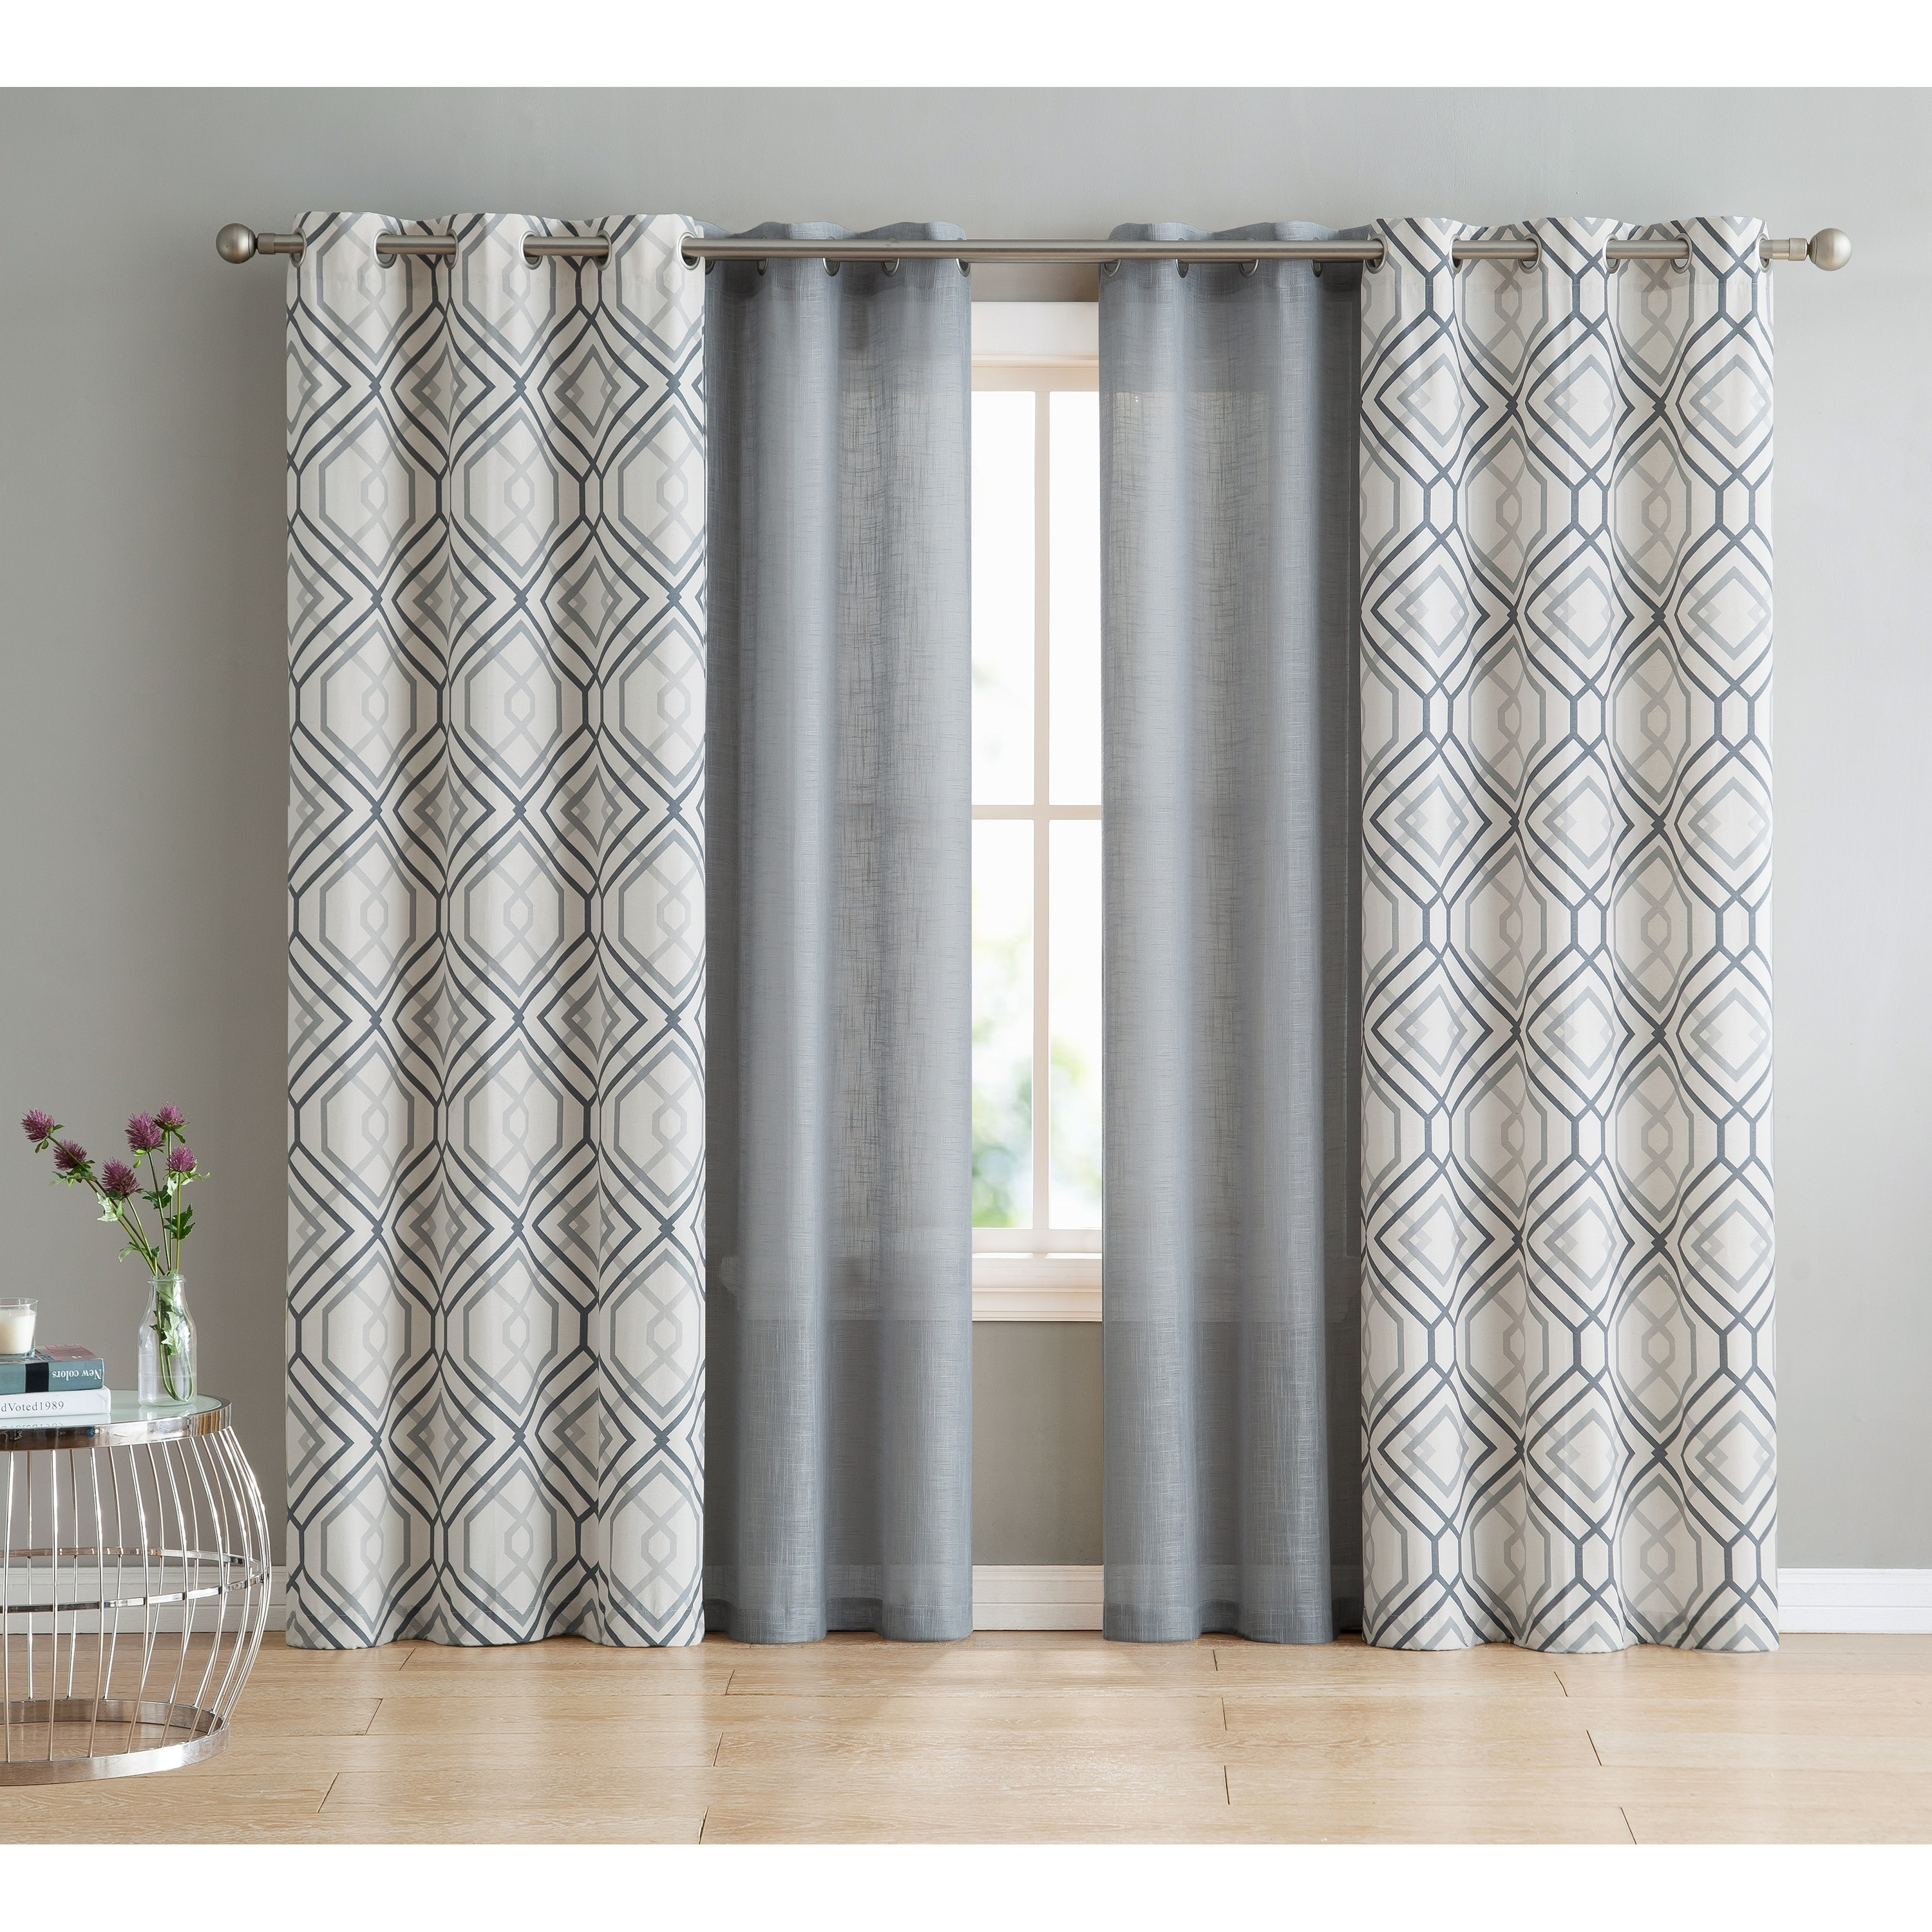 kids full shower sofa sets cheap matching walmart curtain agreeablem with amazon of valancesbathroom woods agreeable accessories photo curtains design and size bathroom